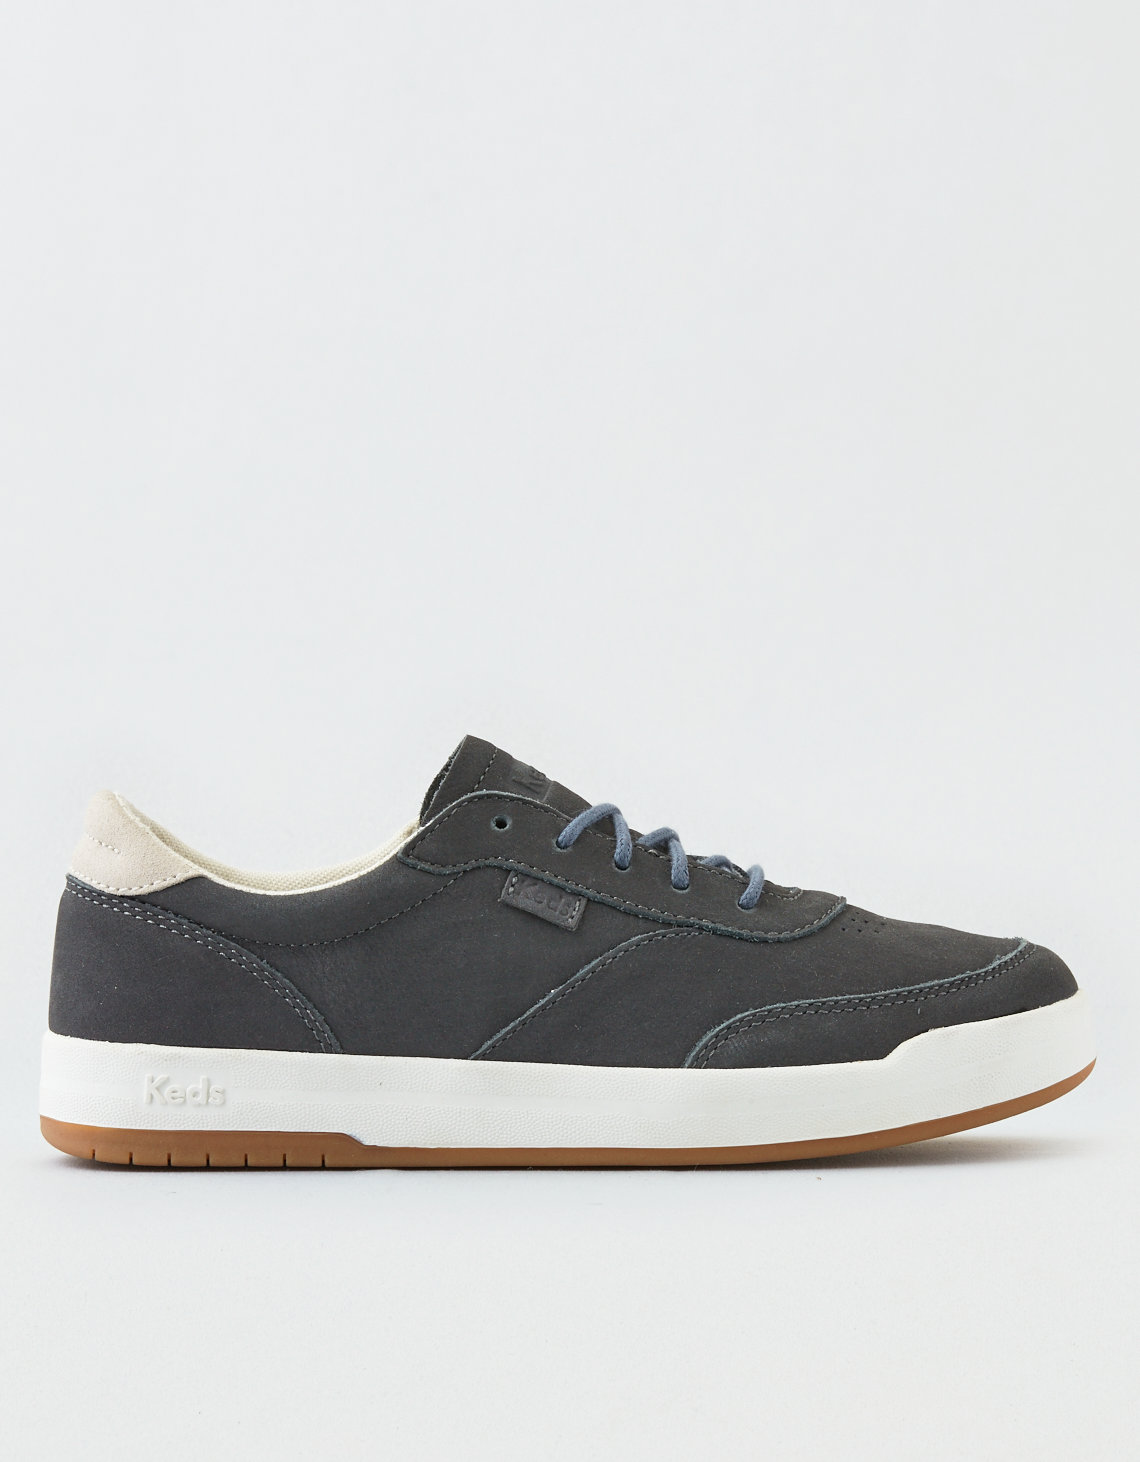 b4da09f31f5 Keds Match Point Nubuck Sneaker